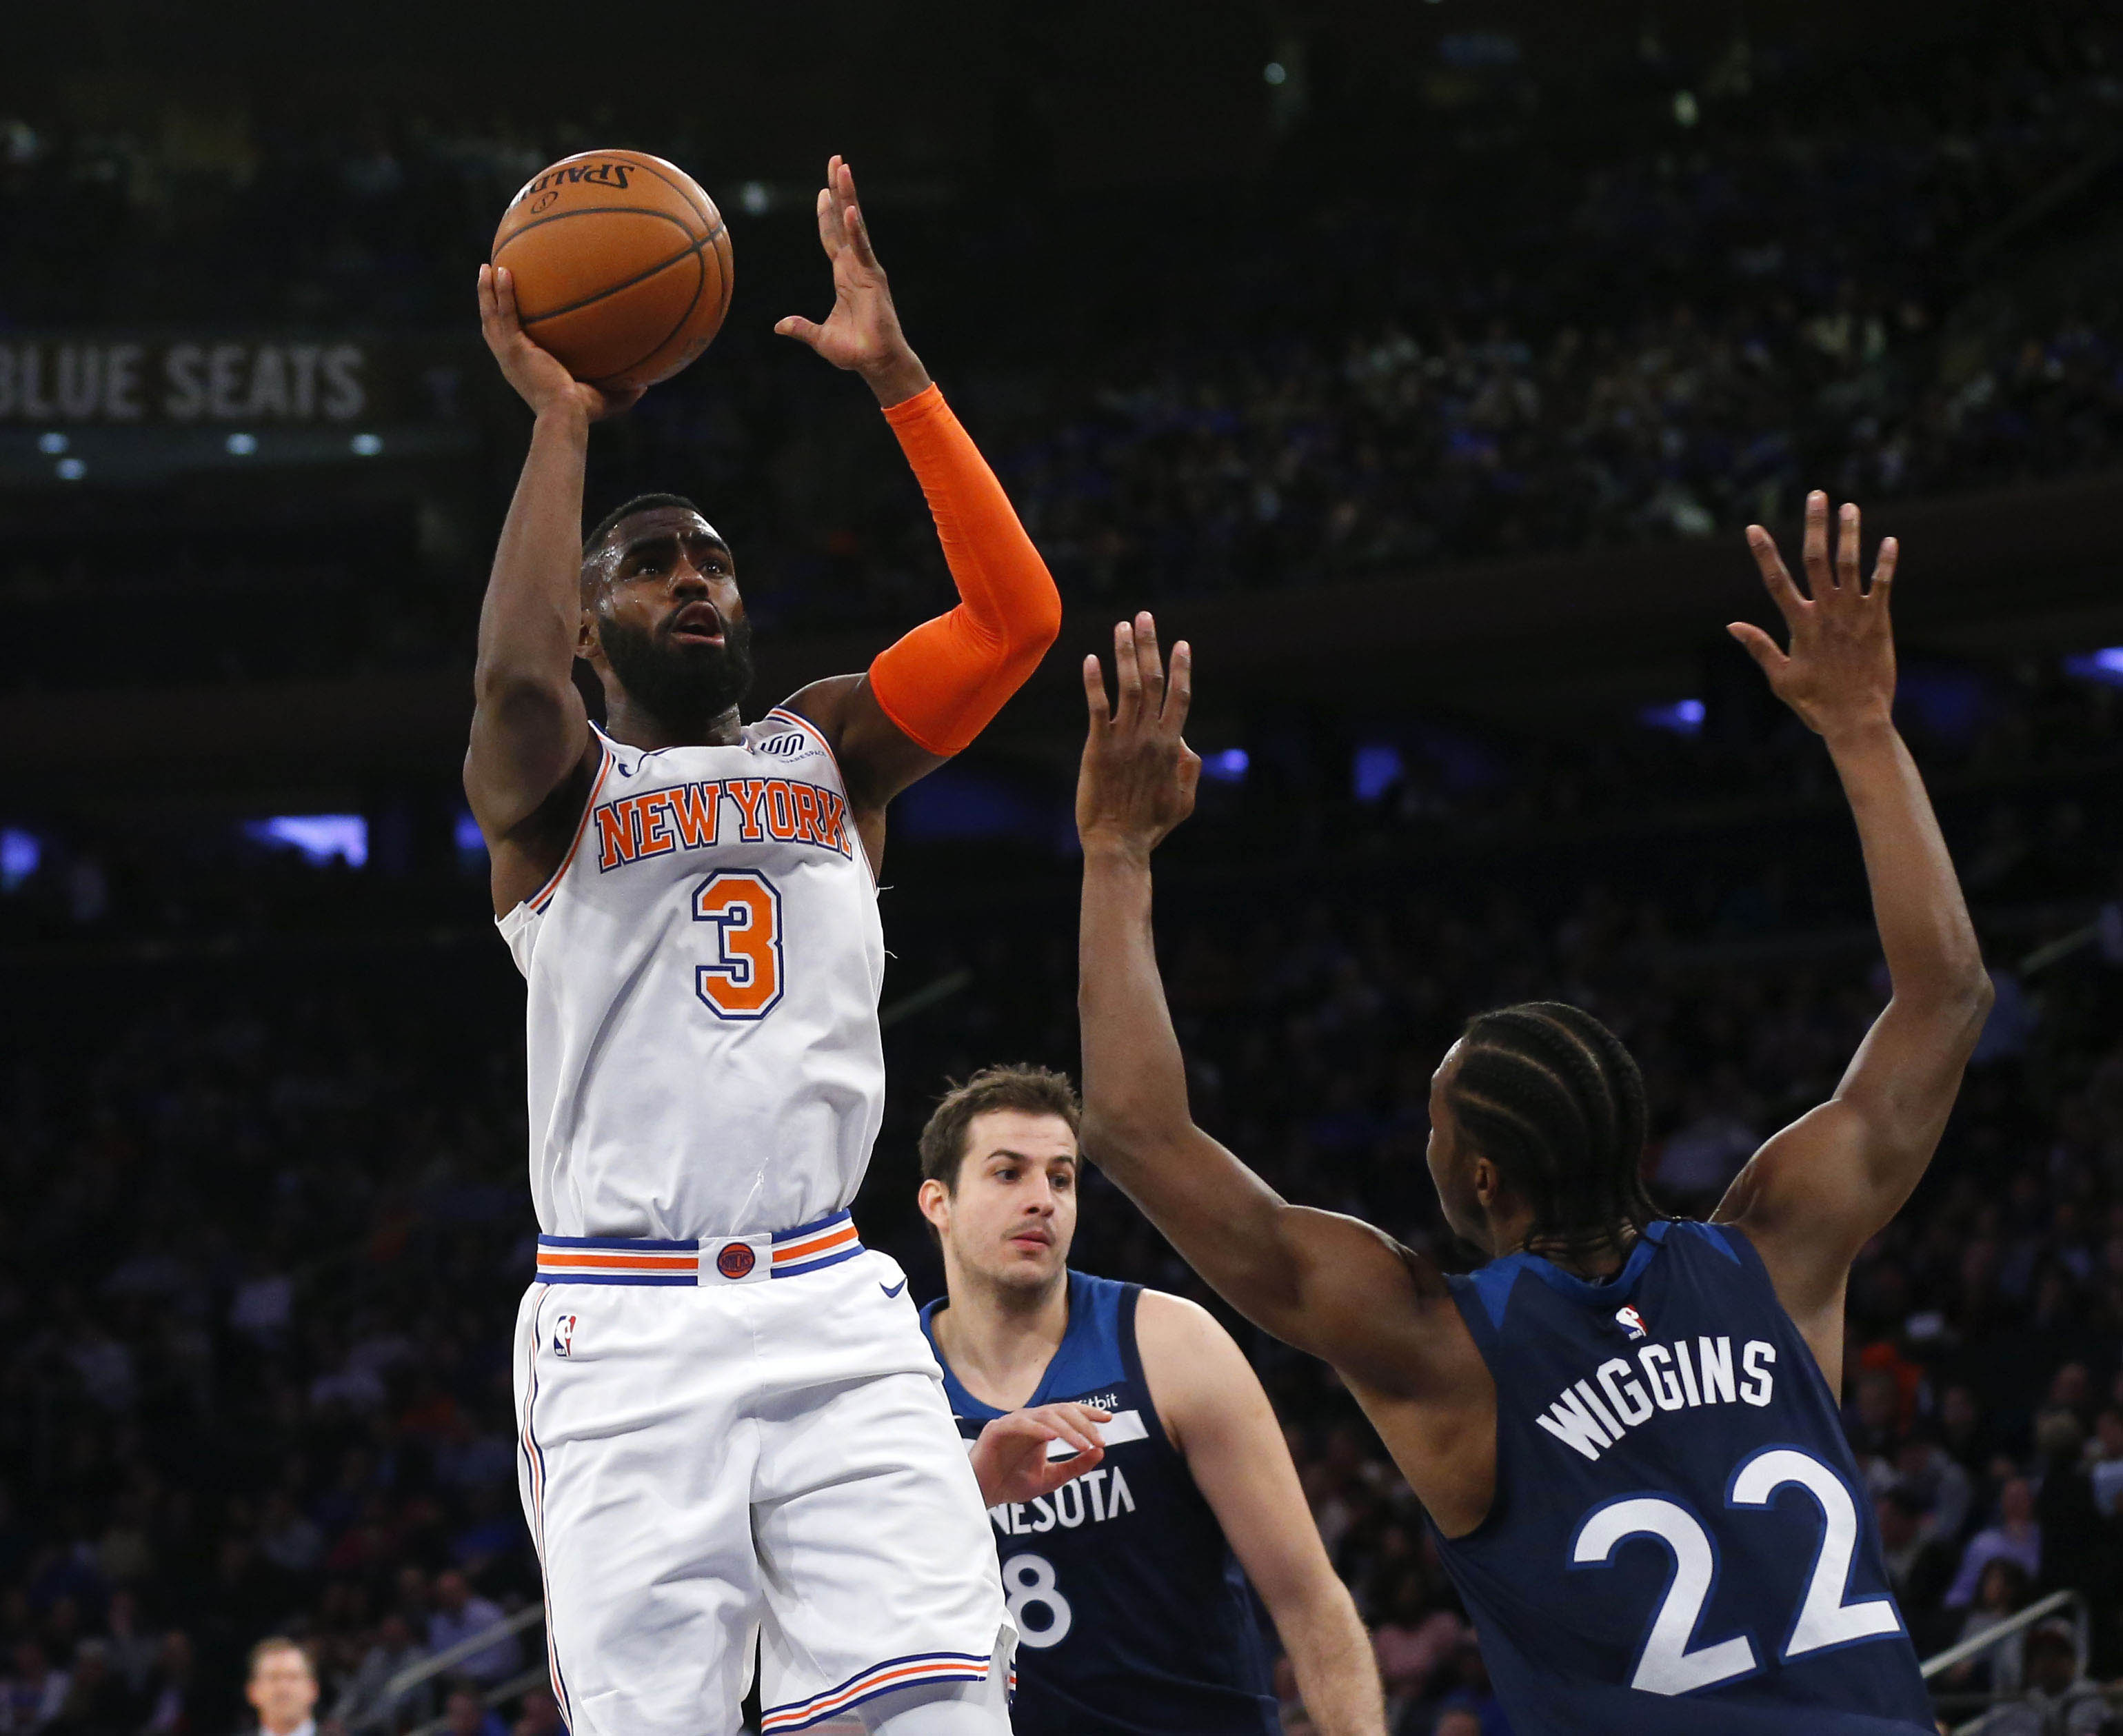 WATCH: Knicks' Tim Hardaway Jr. already hard at work with offseason training